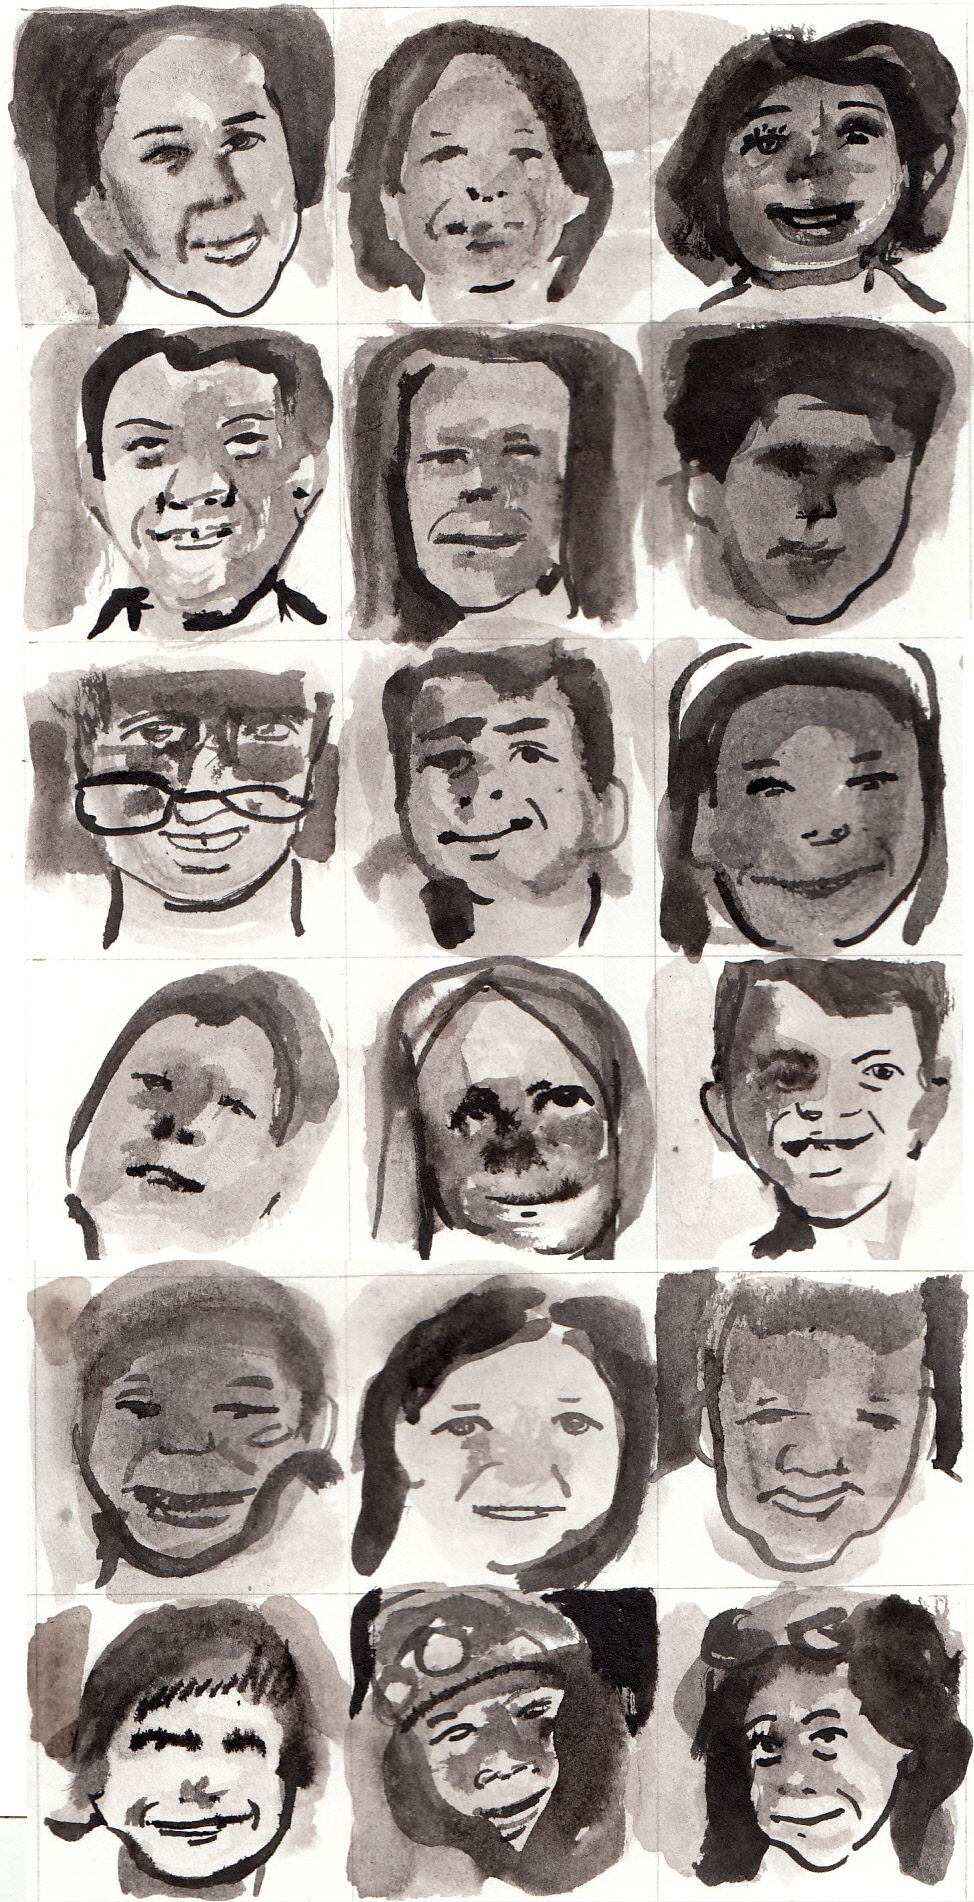 withapencilinhand:  America's Dunblane 18 ink portraits of victims of the Sandy Hook Elementary School shooting in Newtown, Connecticut